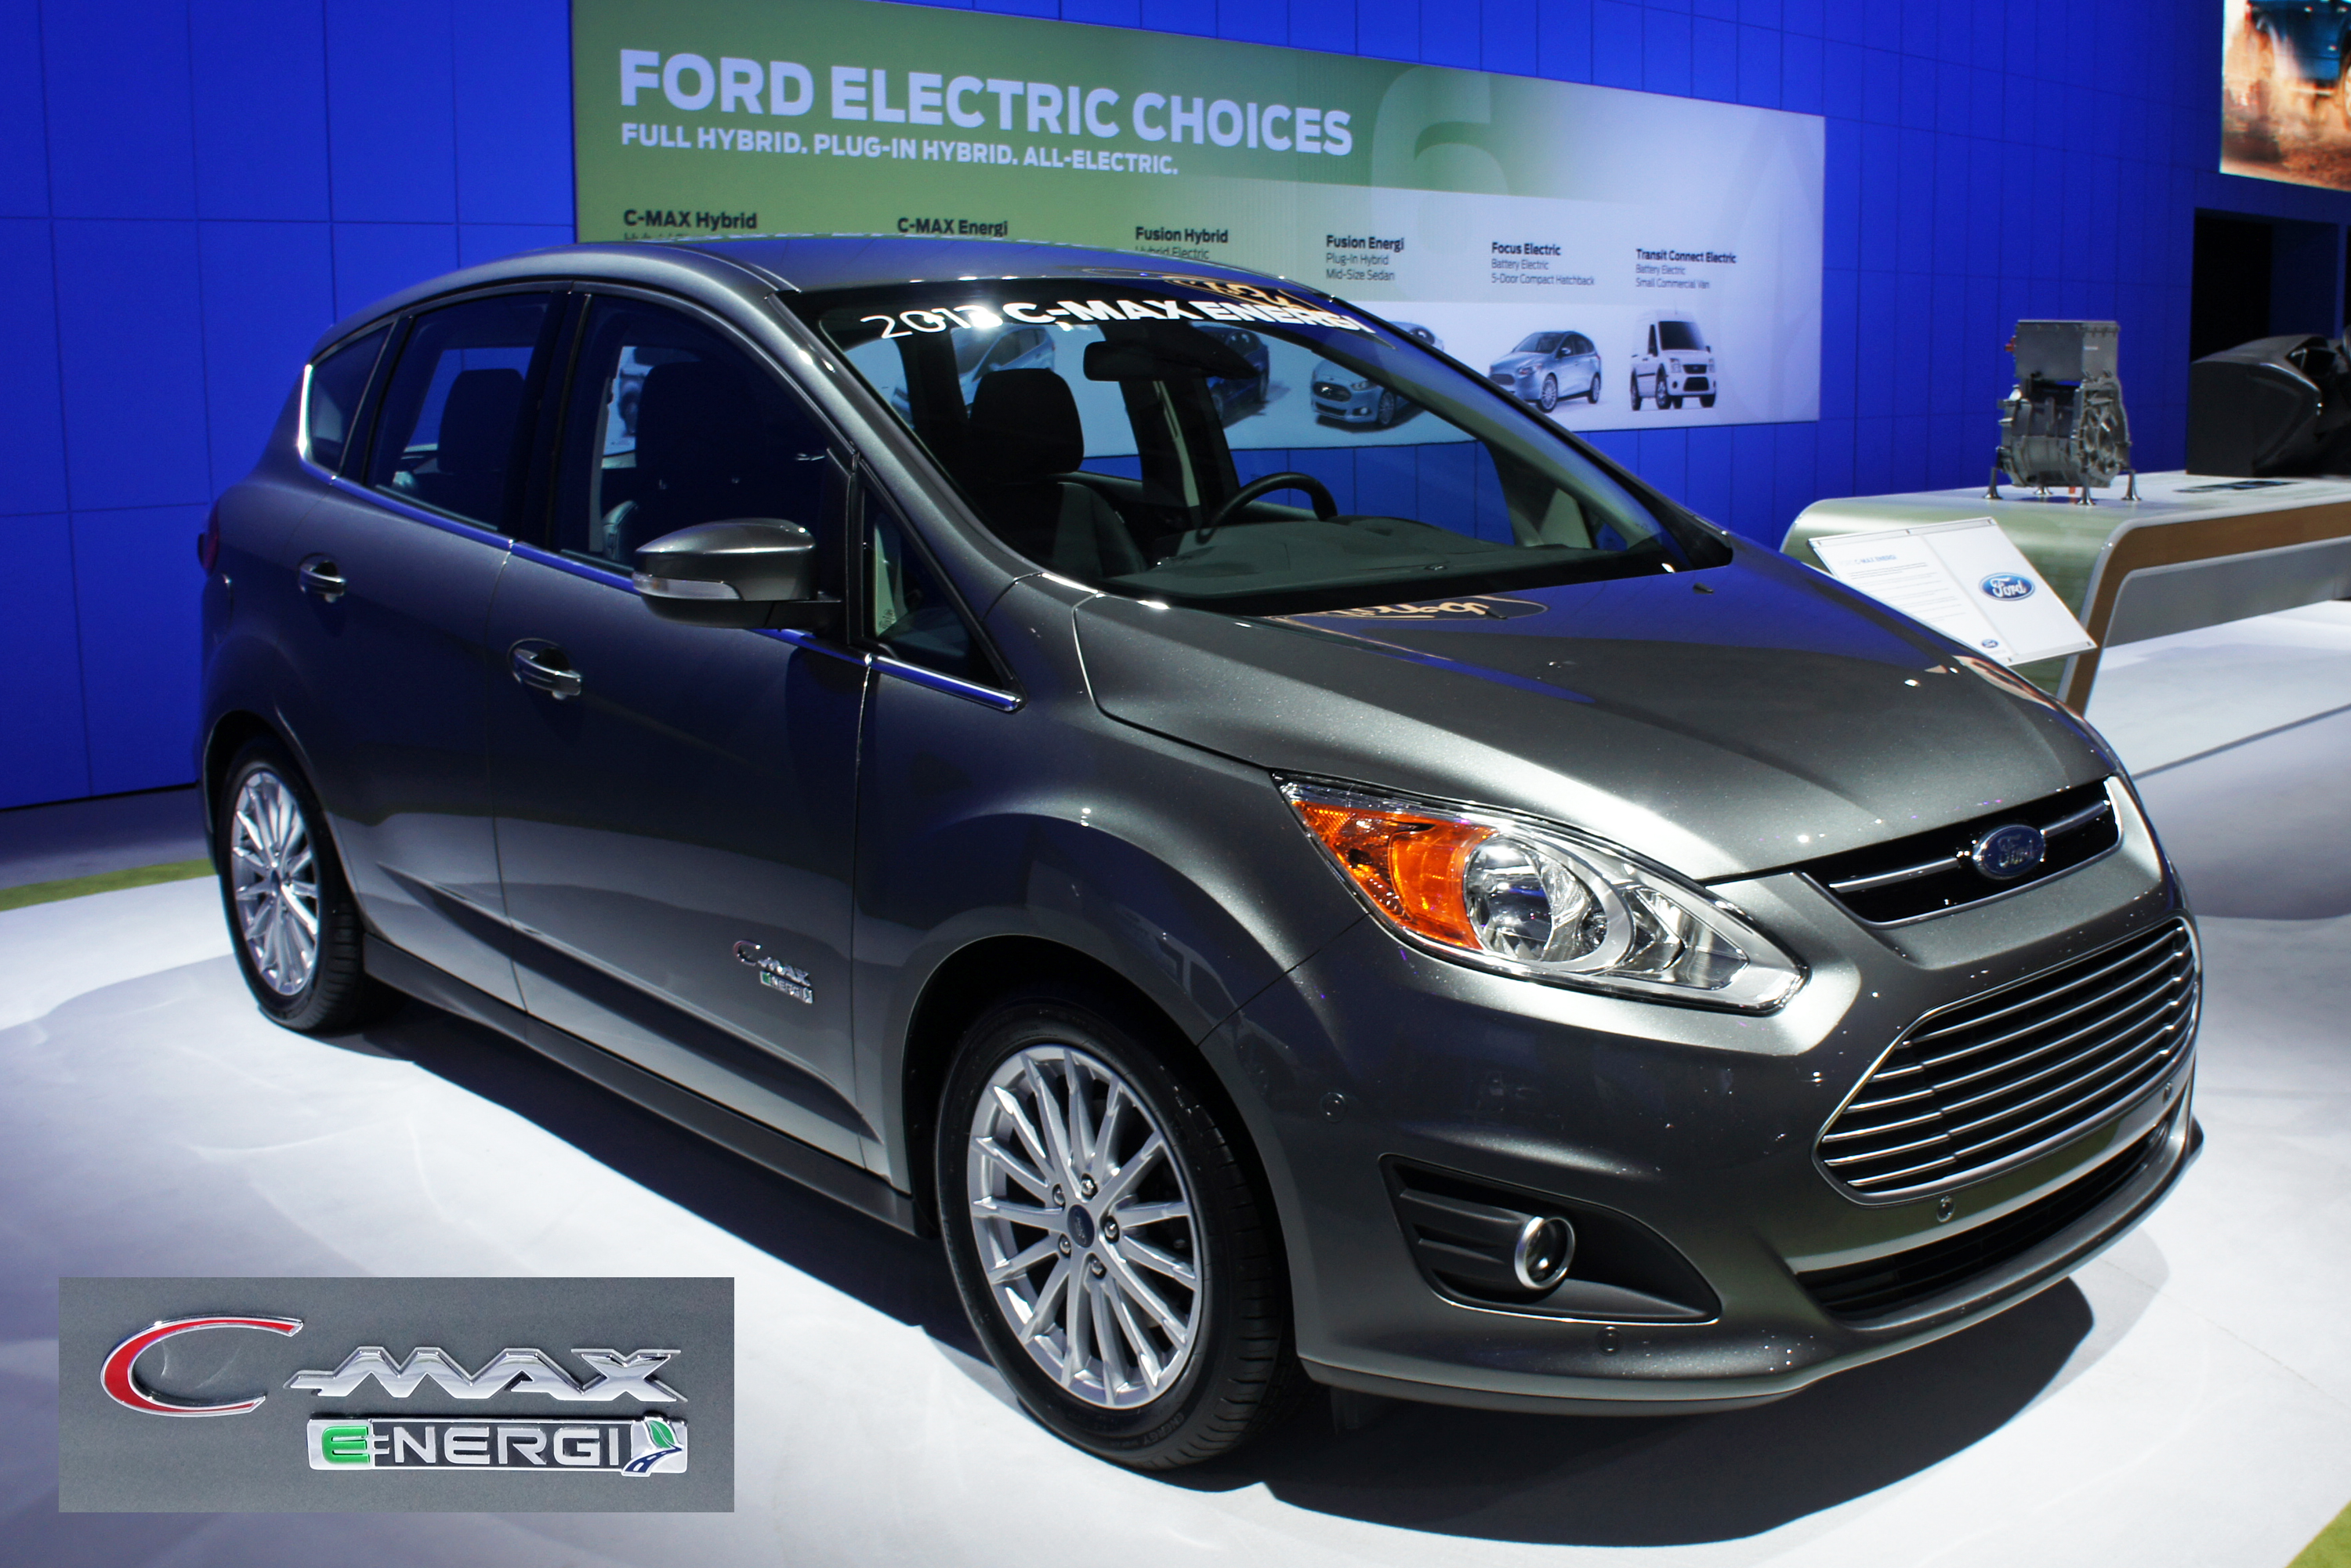 2012 Ford C-Max #1